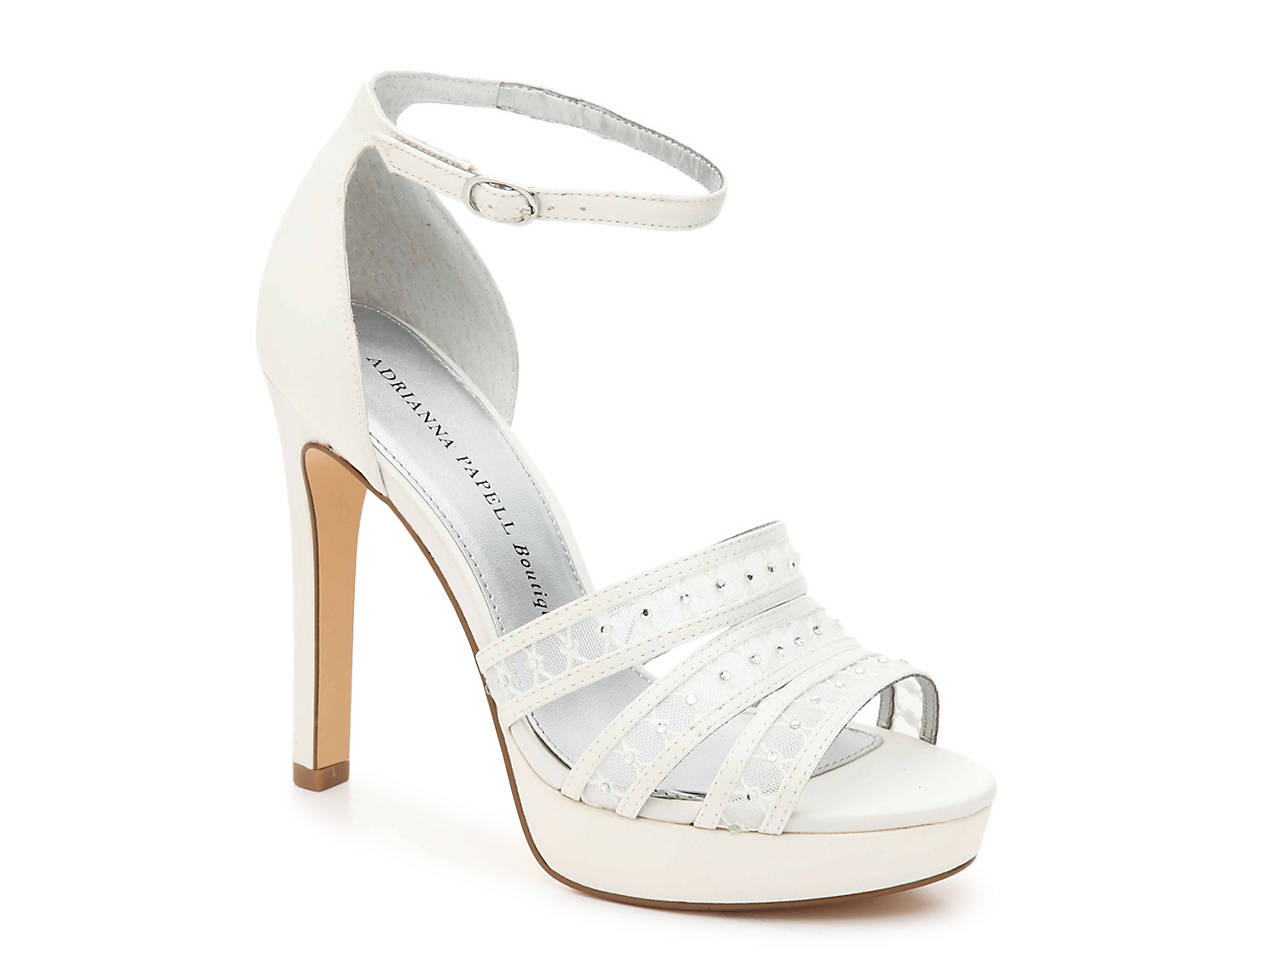 d91db1eed0b9 Adrianna Papell Boutique Taimi Platform Sandal Women s Shoes